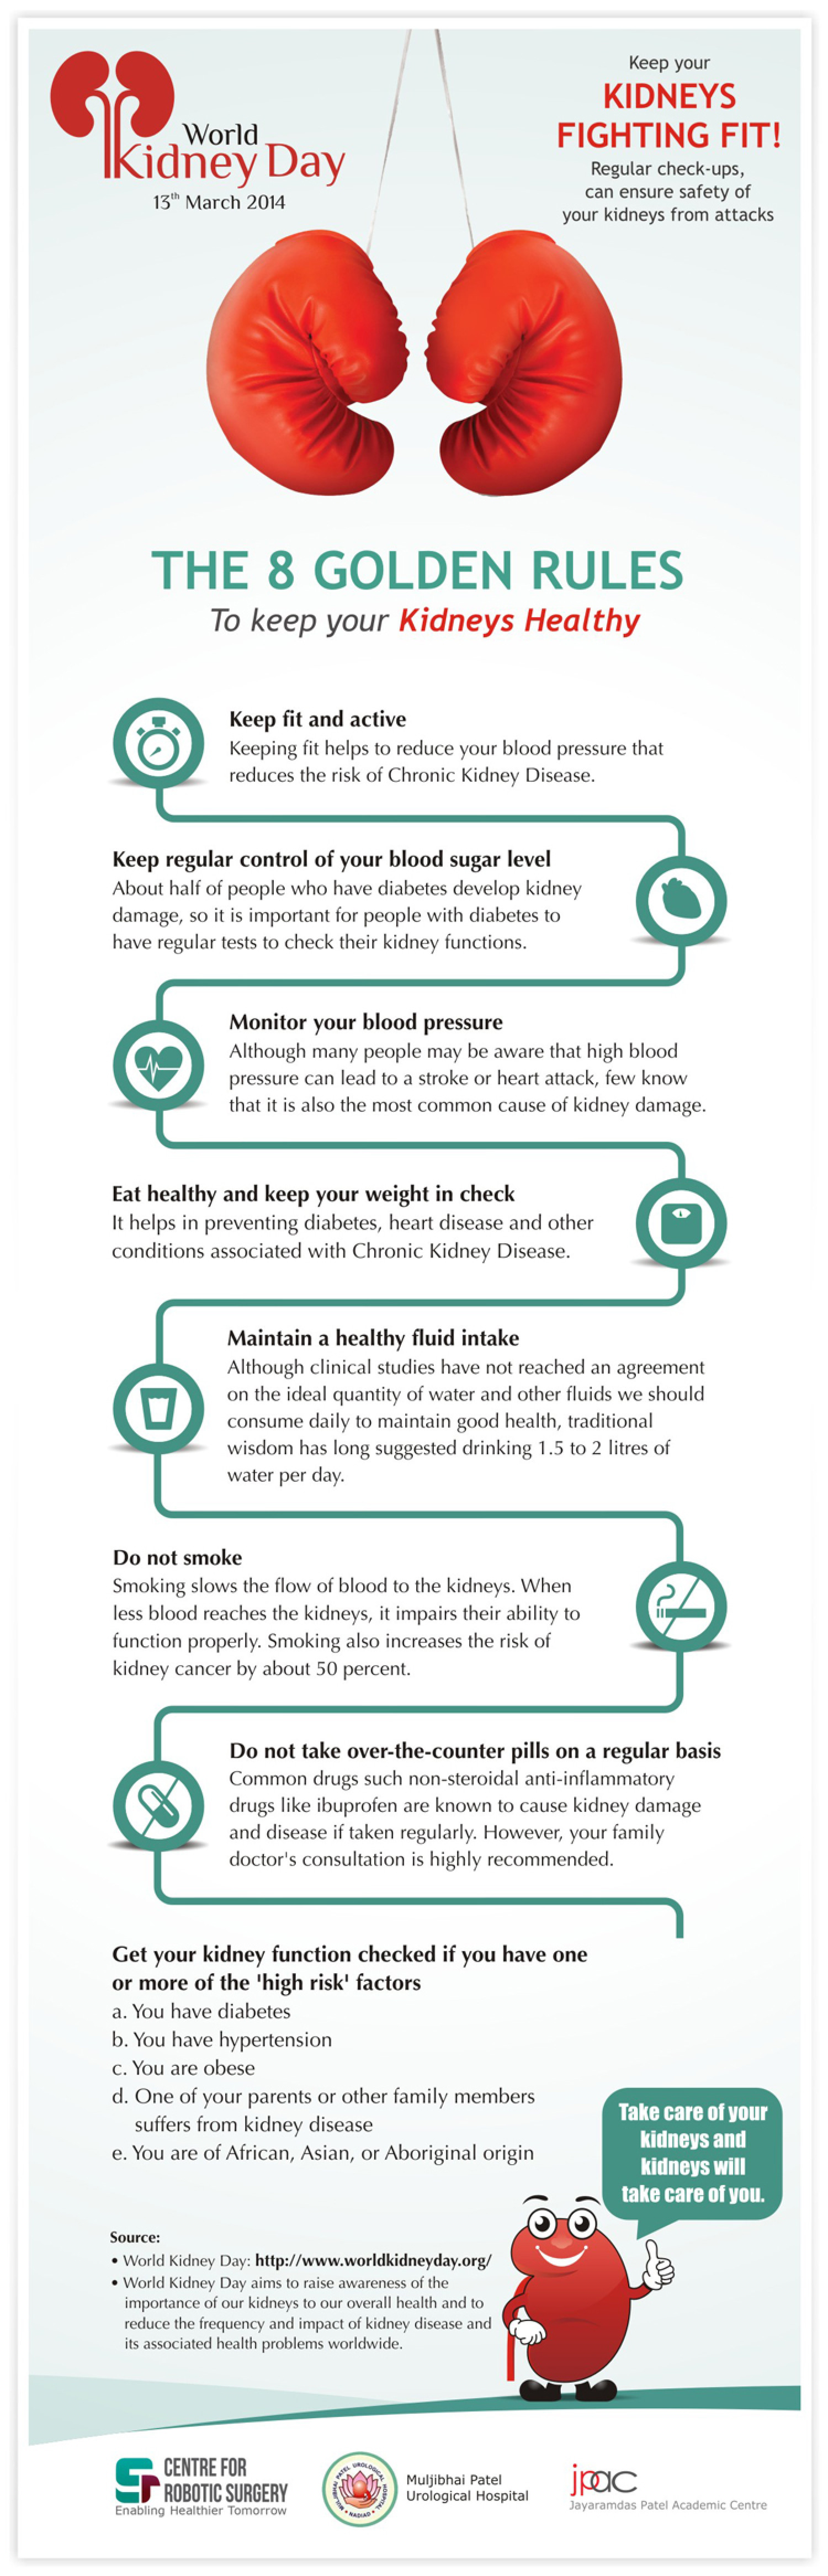 Keep Your Kidneys Fighting Fit! Infographic